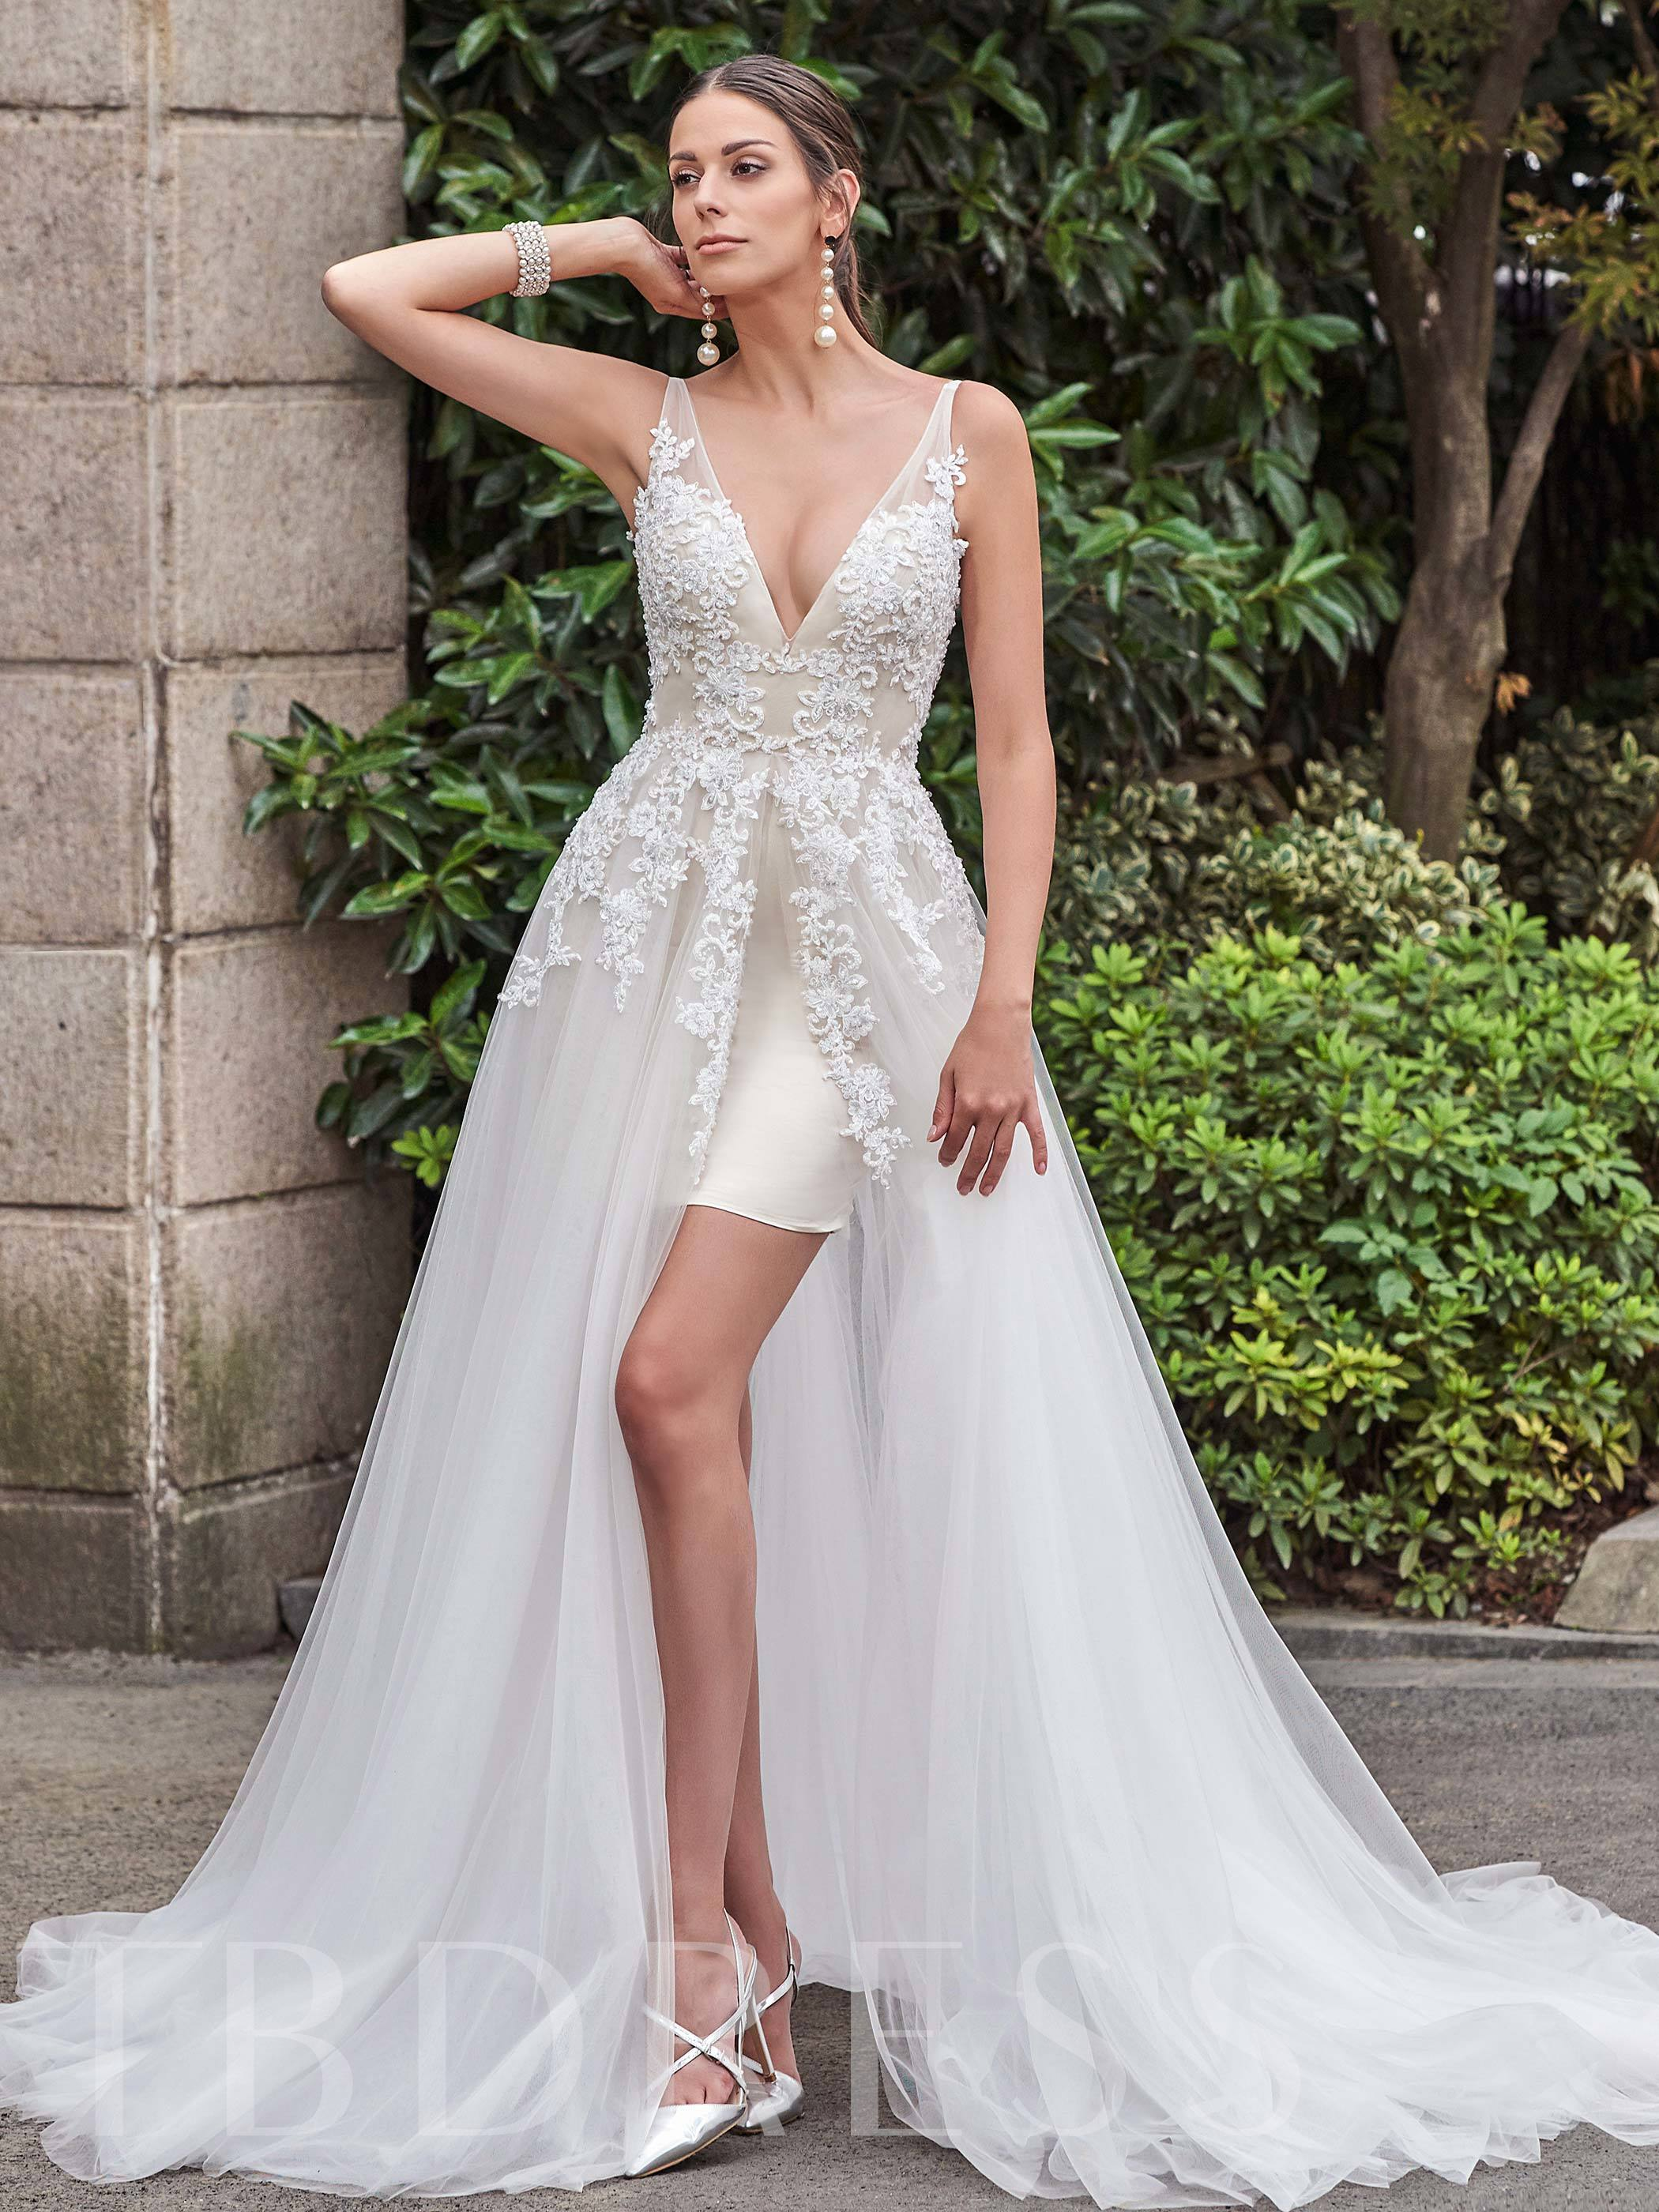 Designer Open Back V-Neck Appliques A-Line Court Train Bridal Gown 12742417